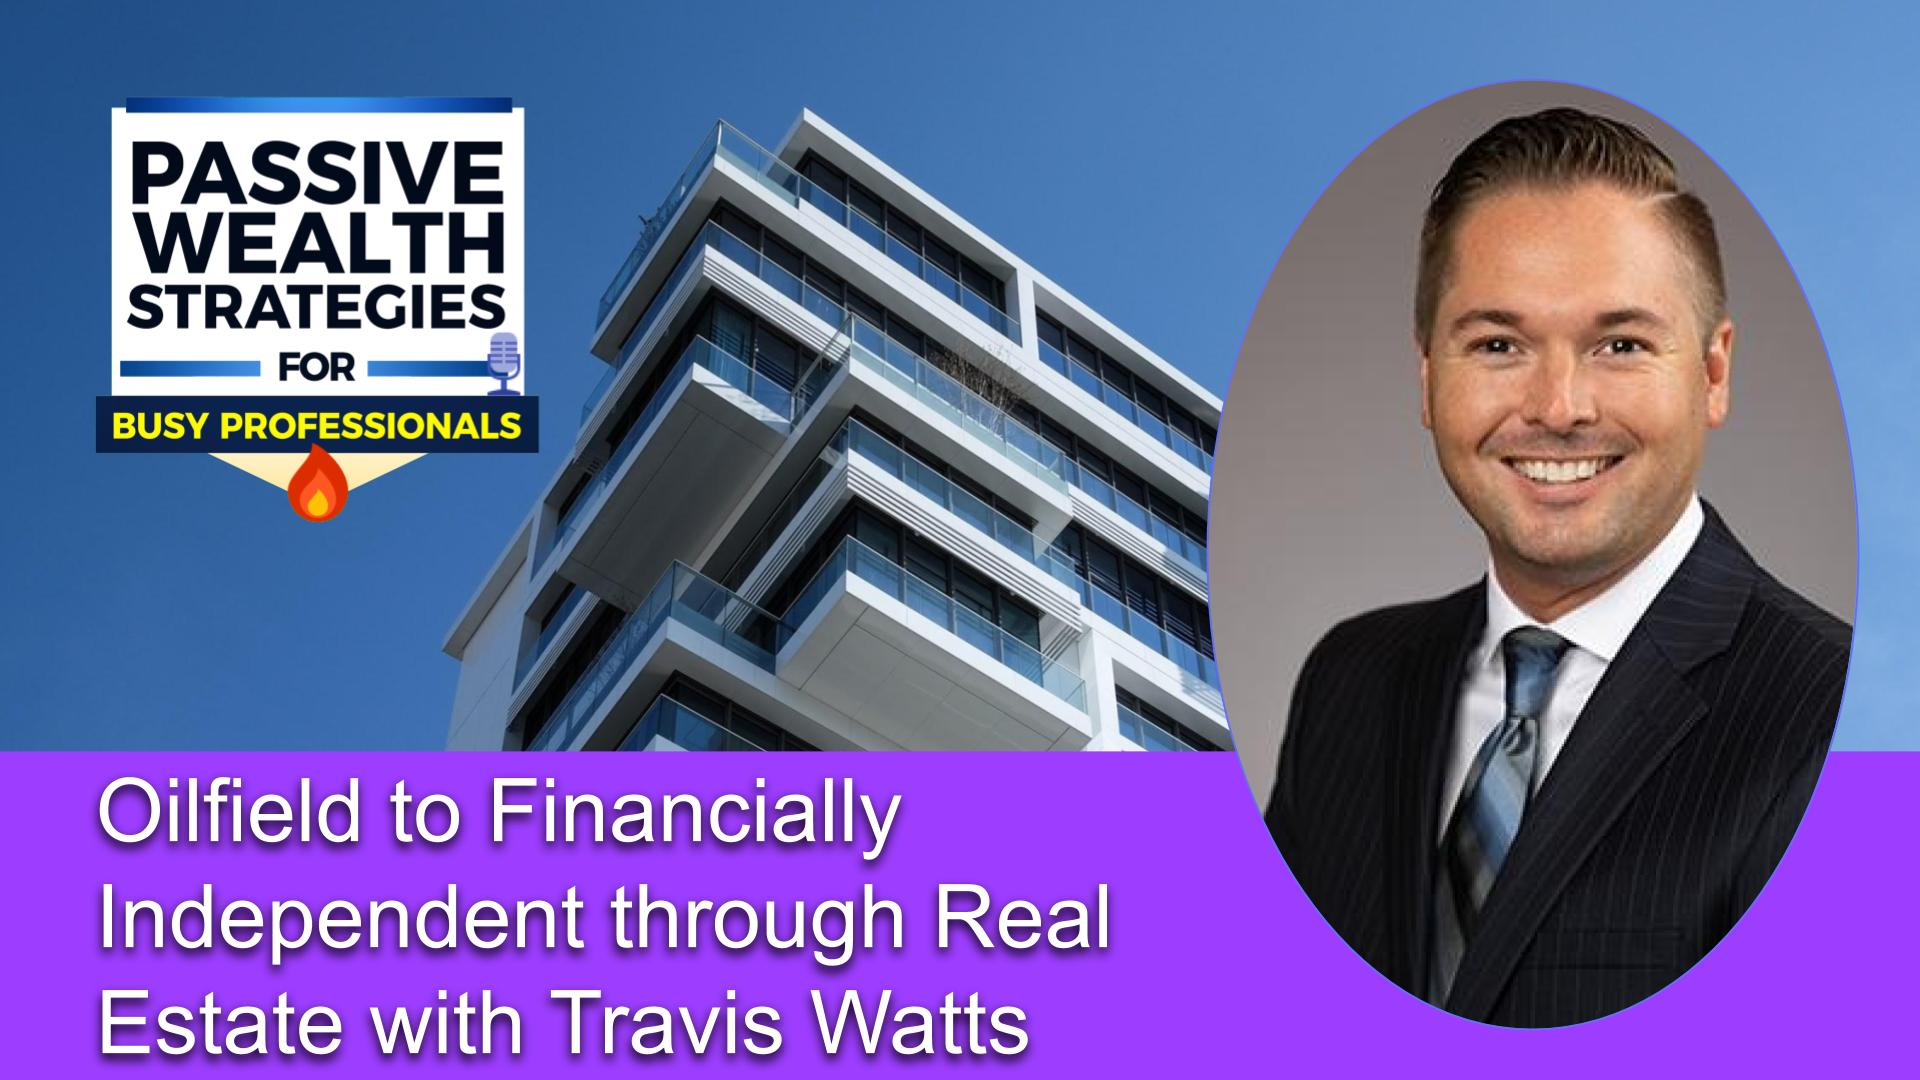 Oilfield to Financially Independent through Real Estate with Travis Watts